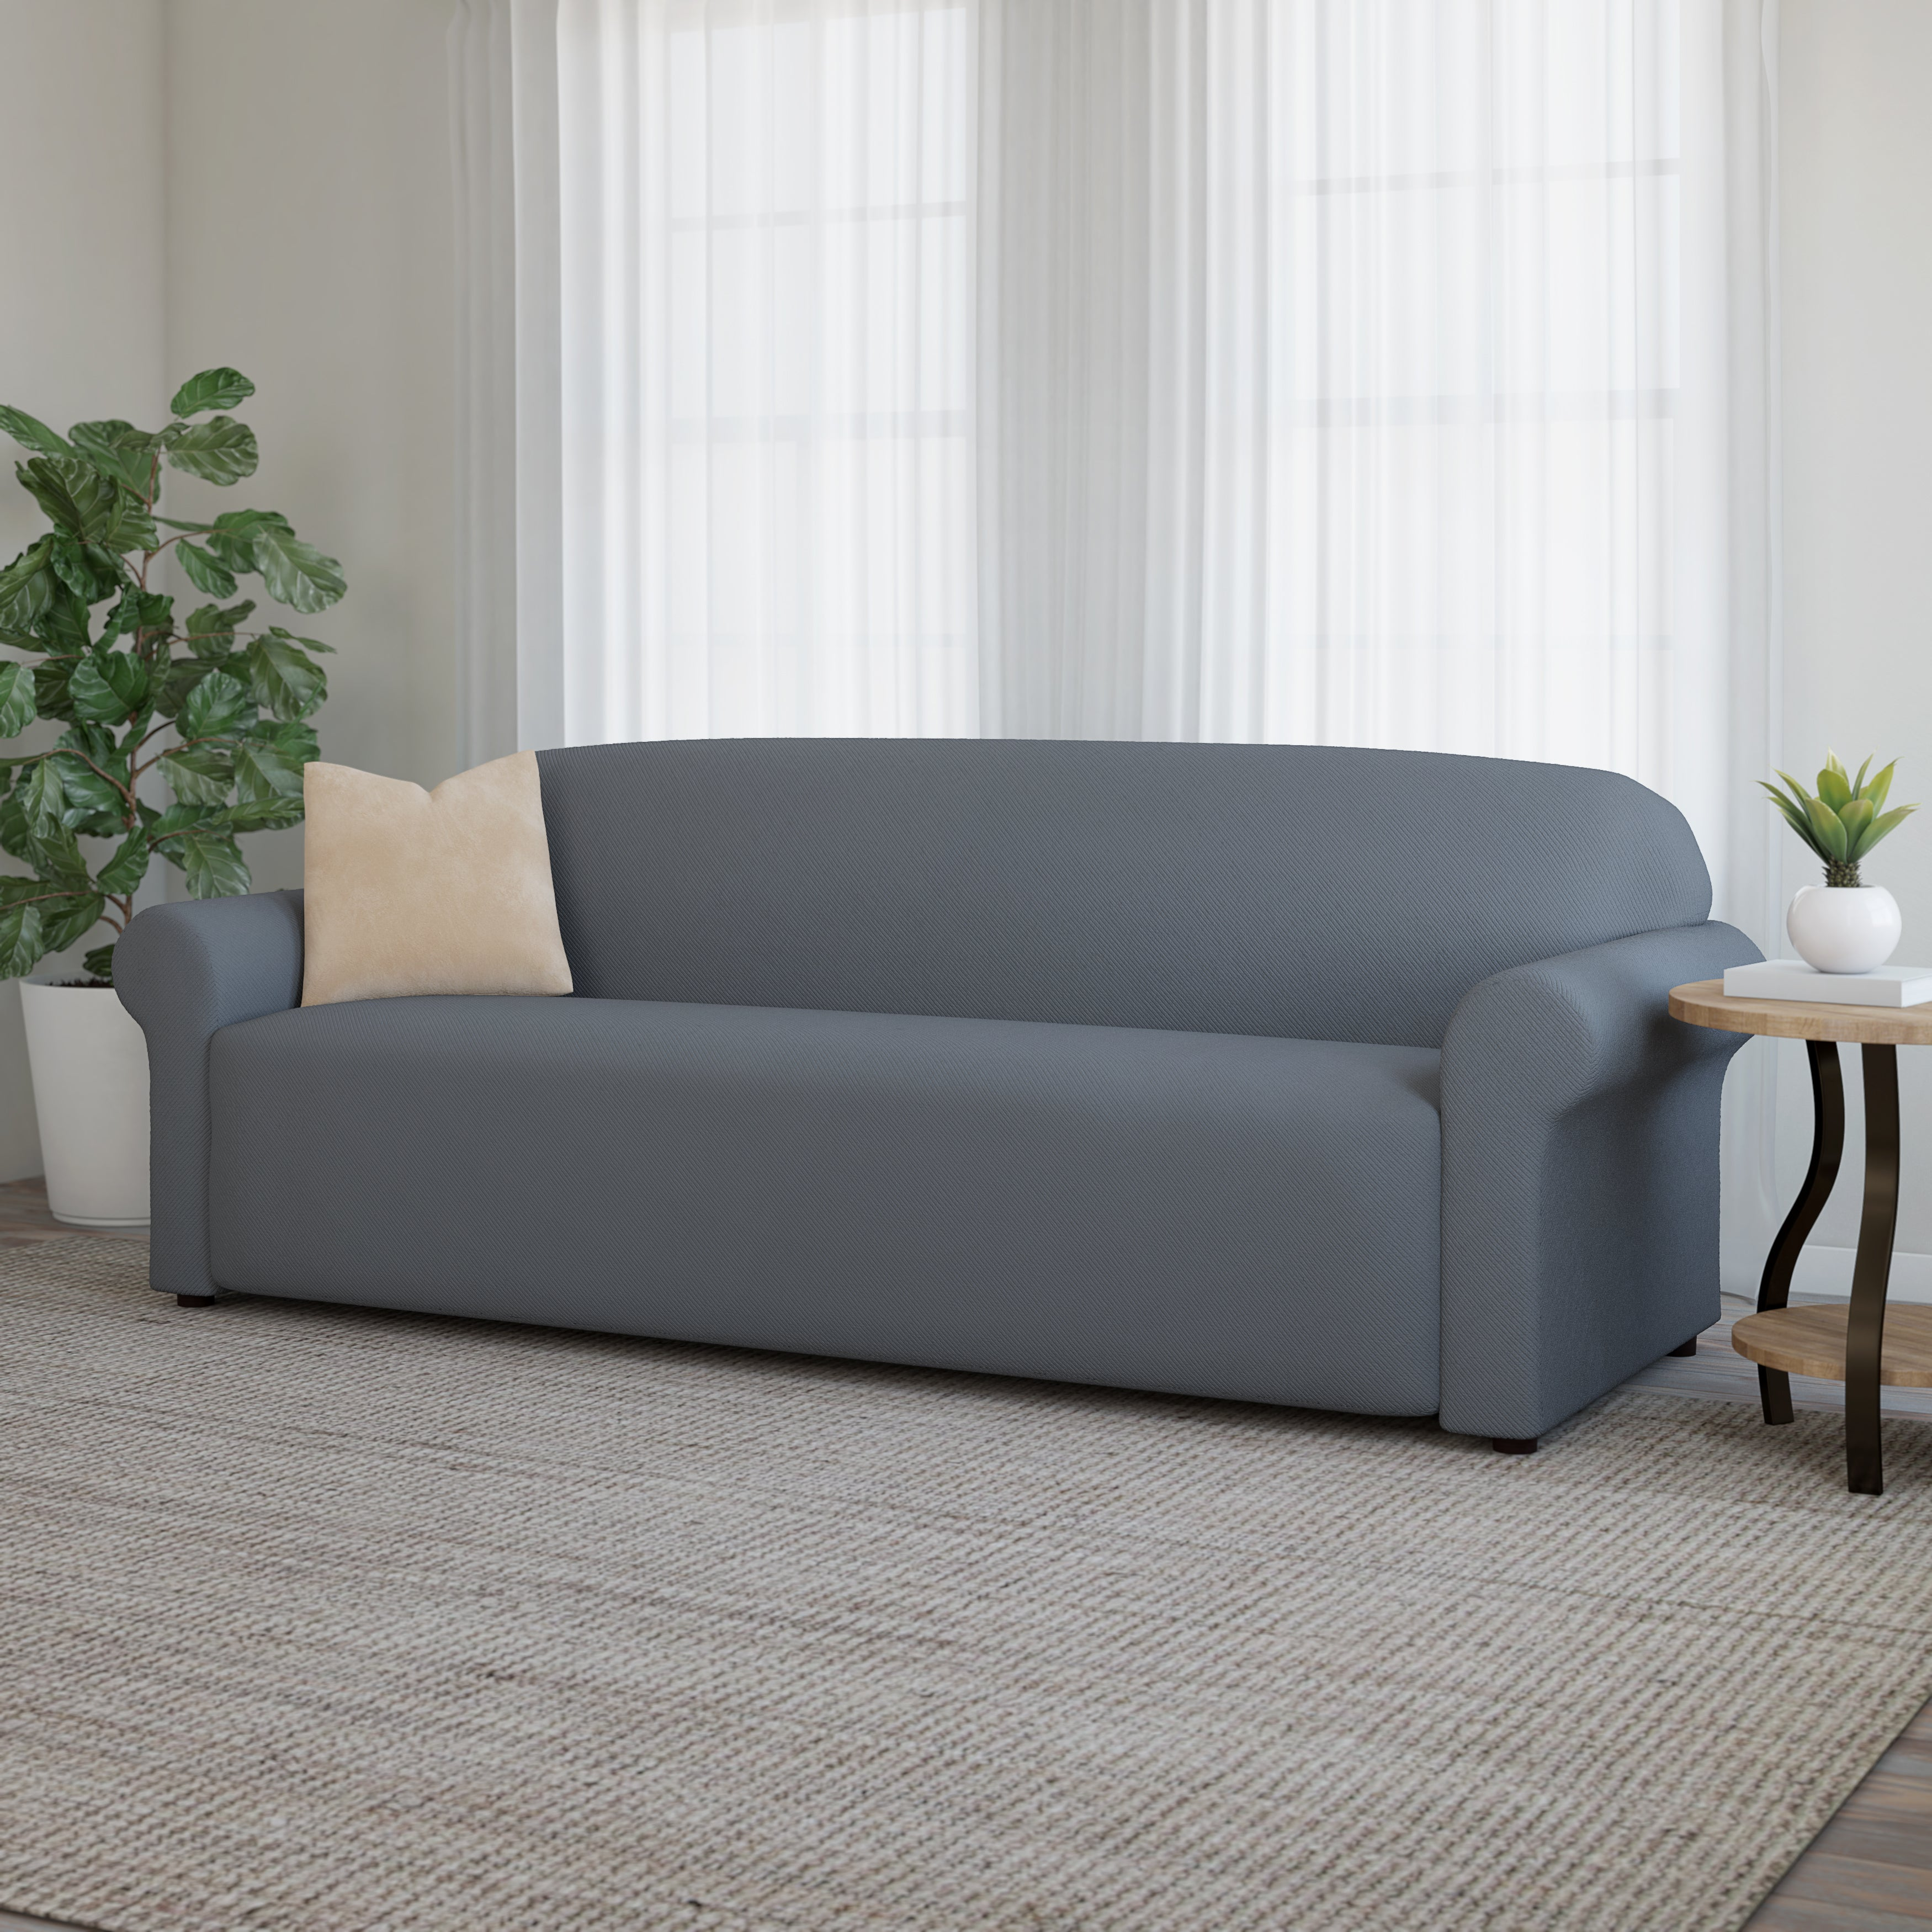 Grey Sofa Couch Slipcovers Online At Our Best Furniture Covers Deals